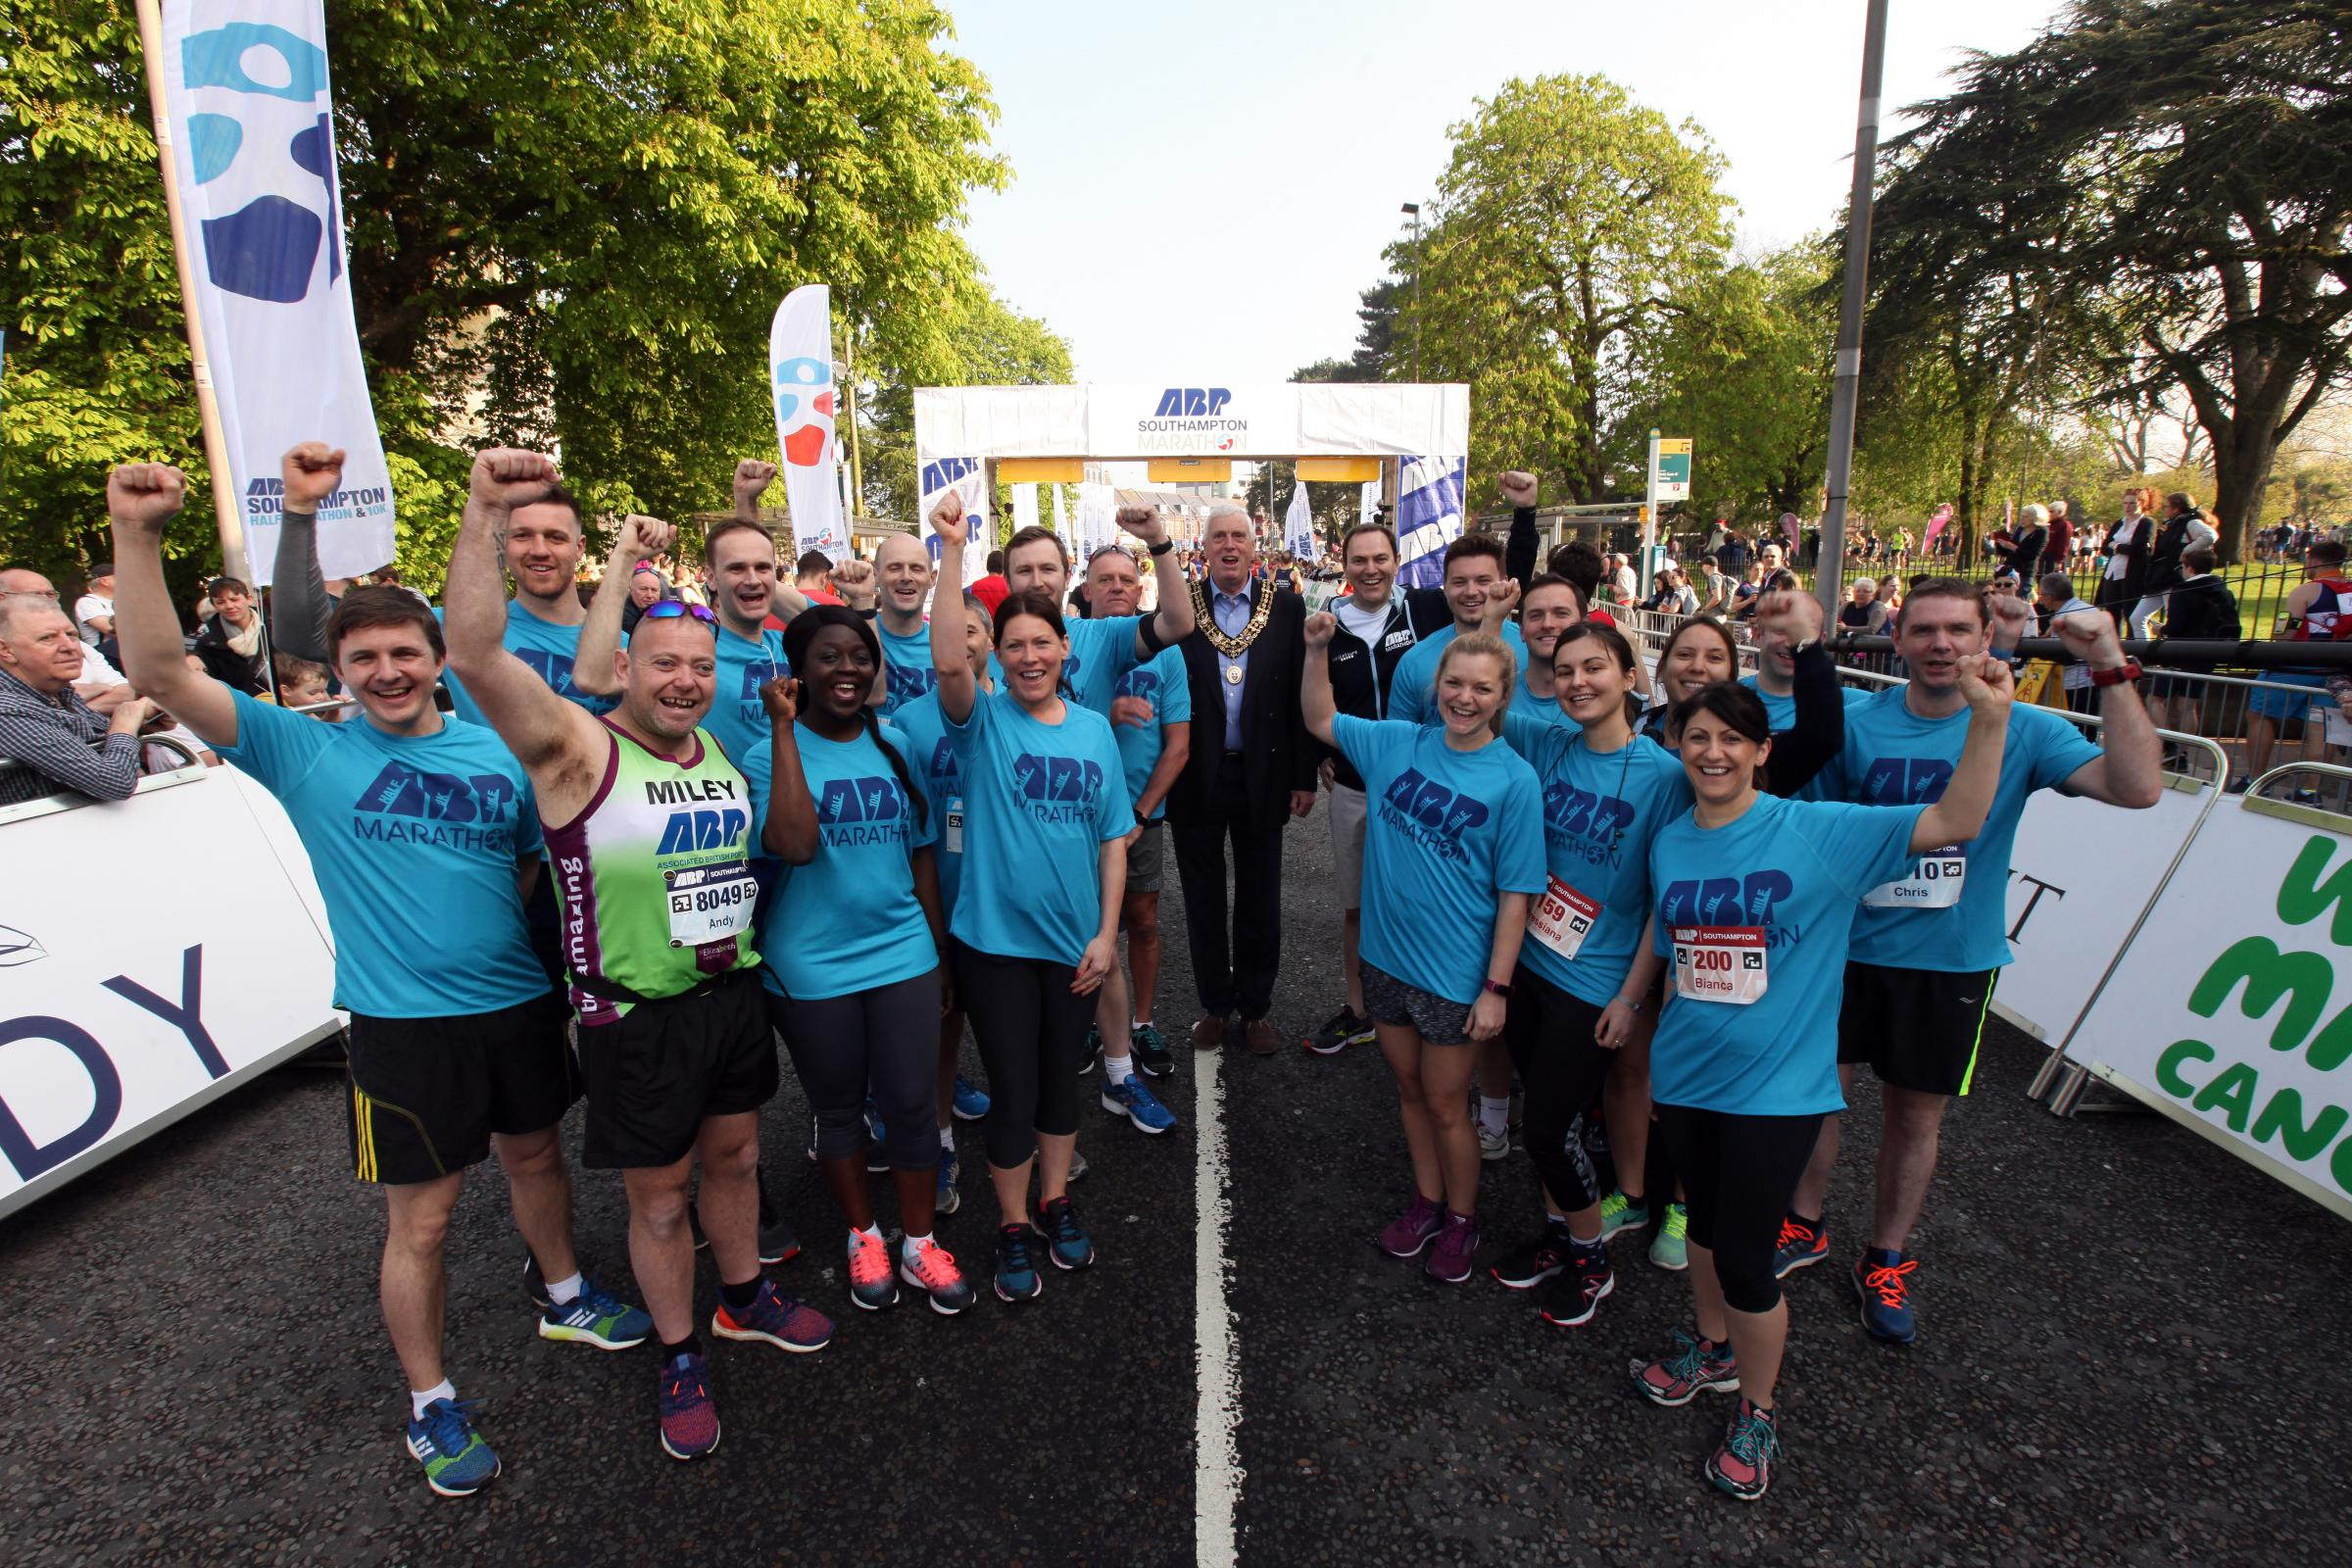 ABP runners with Mayor of Southampton Cllr Les Harris and port director Alastair Welch, both centre. ABP Southampton Marathon               Picture: Chris Moorhouse                   Sunday 22nd April 2018     FOR EDITORIAL USE ONLY.